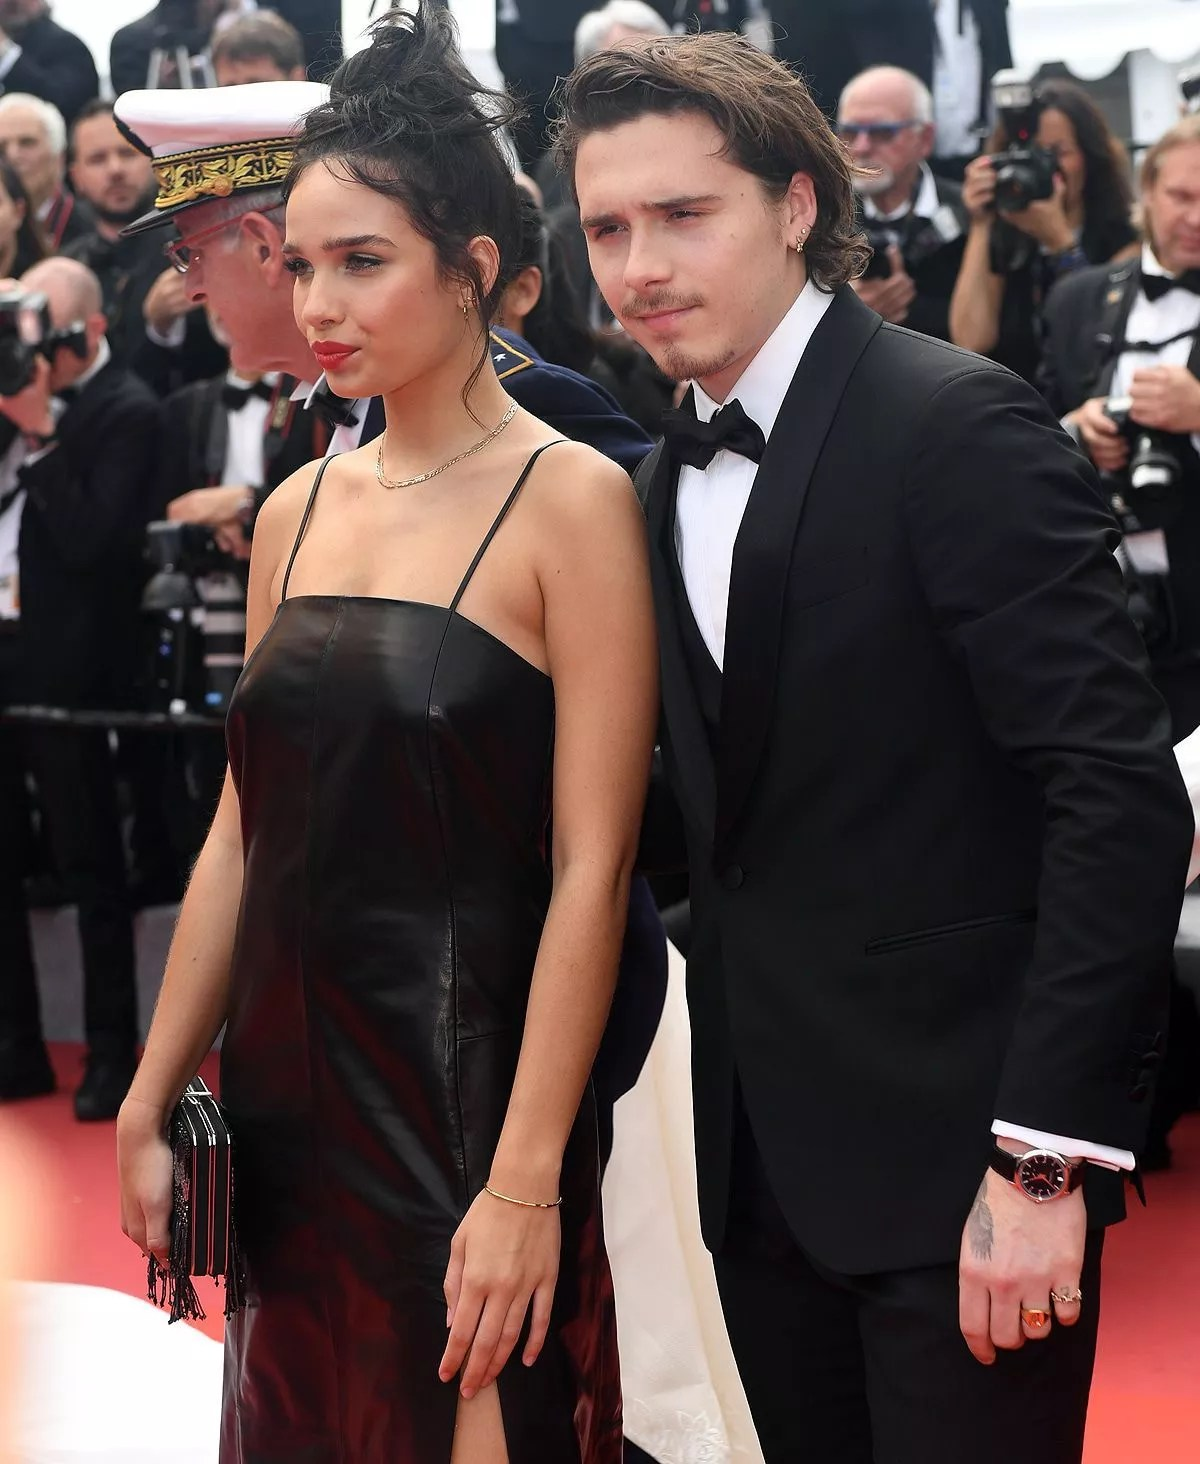 Frisur Victoria Beckham Brooklyn Beckham Mit Freundin Hana Cross In Cannes